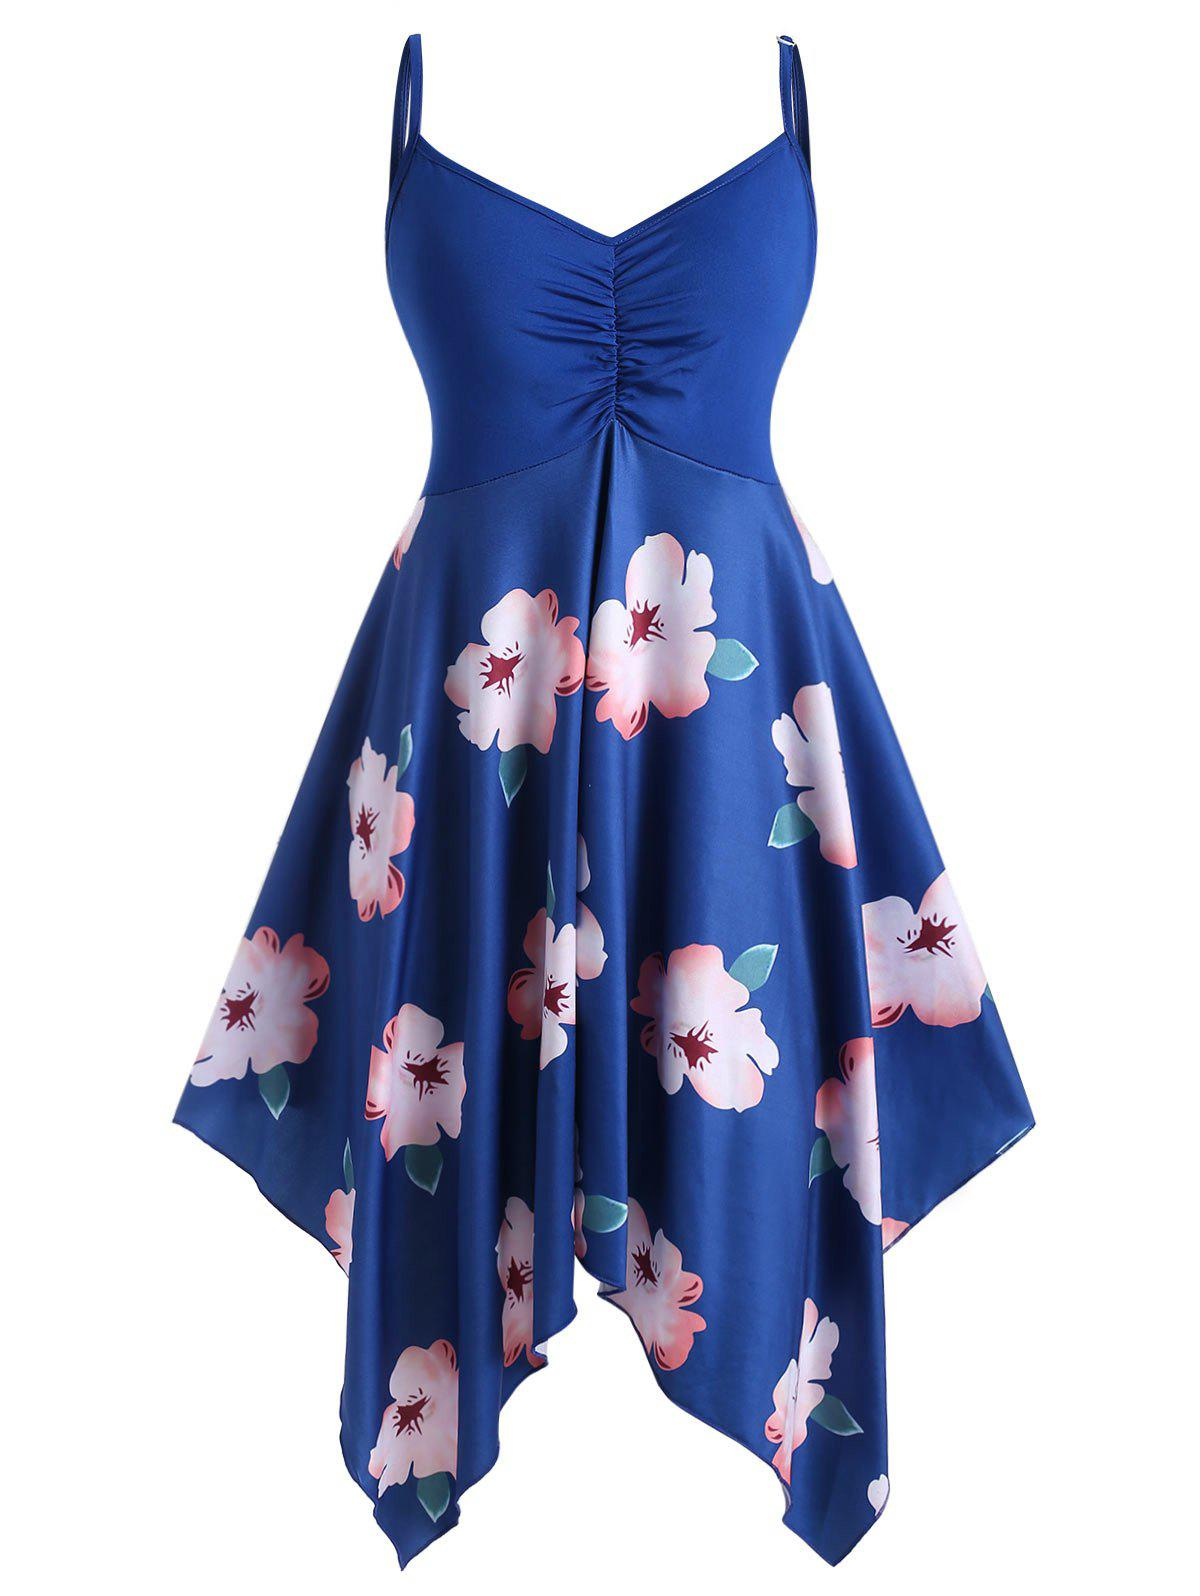 Plus Size Handkerchief Spaghetti Strap Floral Print Dress - OCEAN BLUE 4X